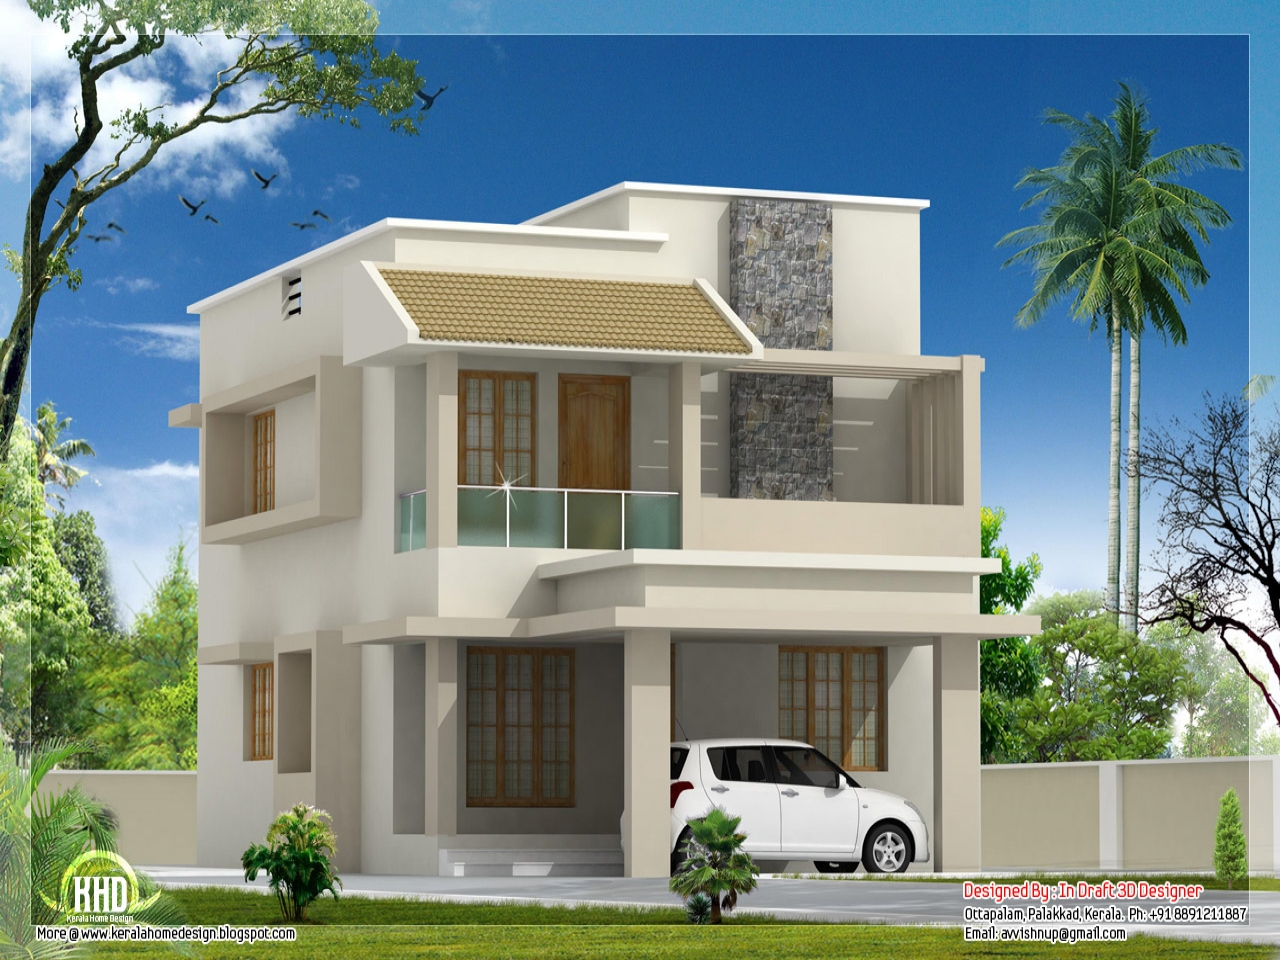 Modern house exterior modern villa design plan small for Modern house villa